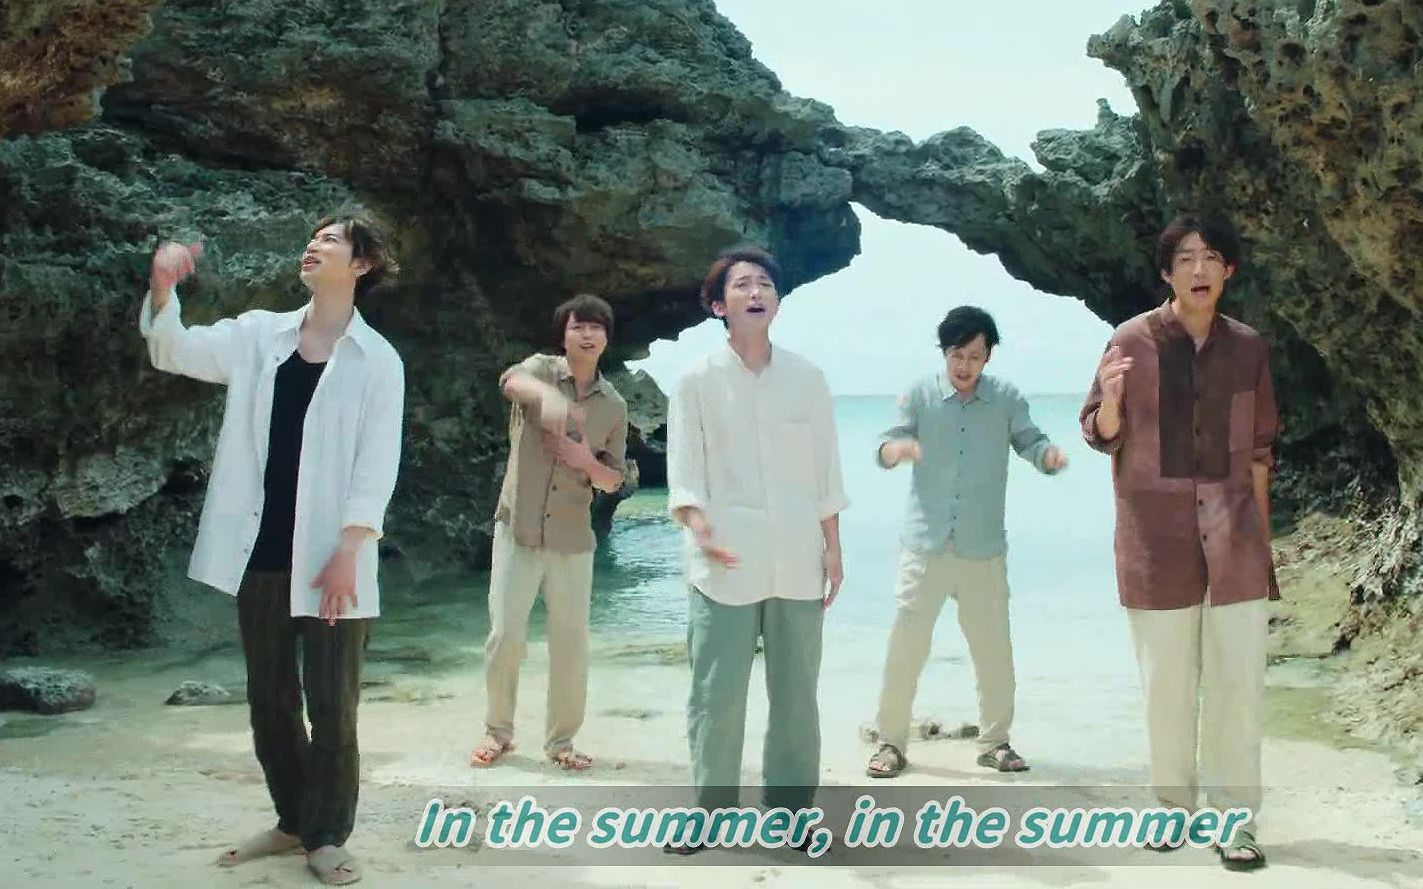 IN THE SUMMER 字幕版